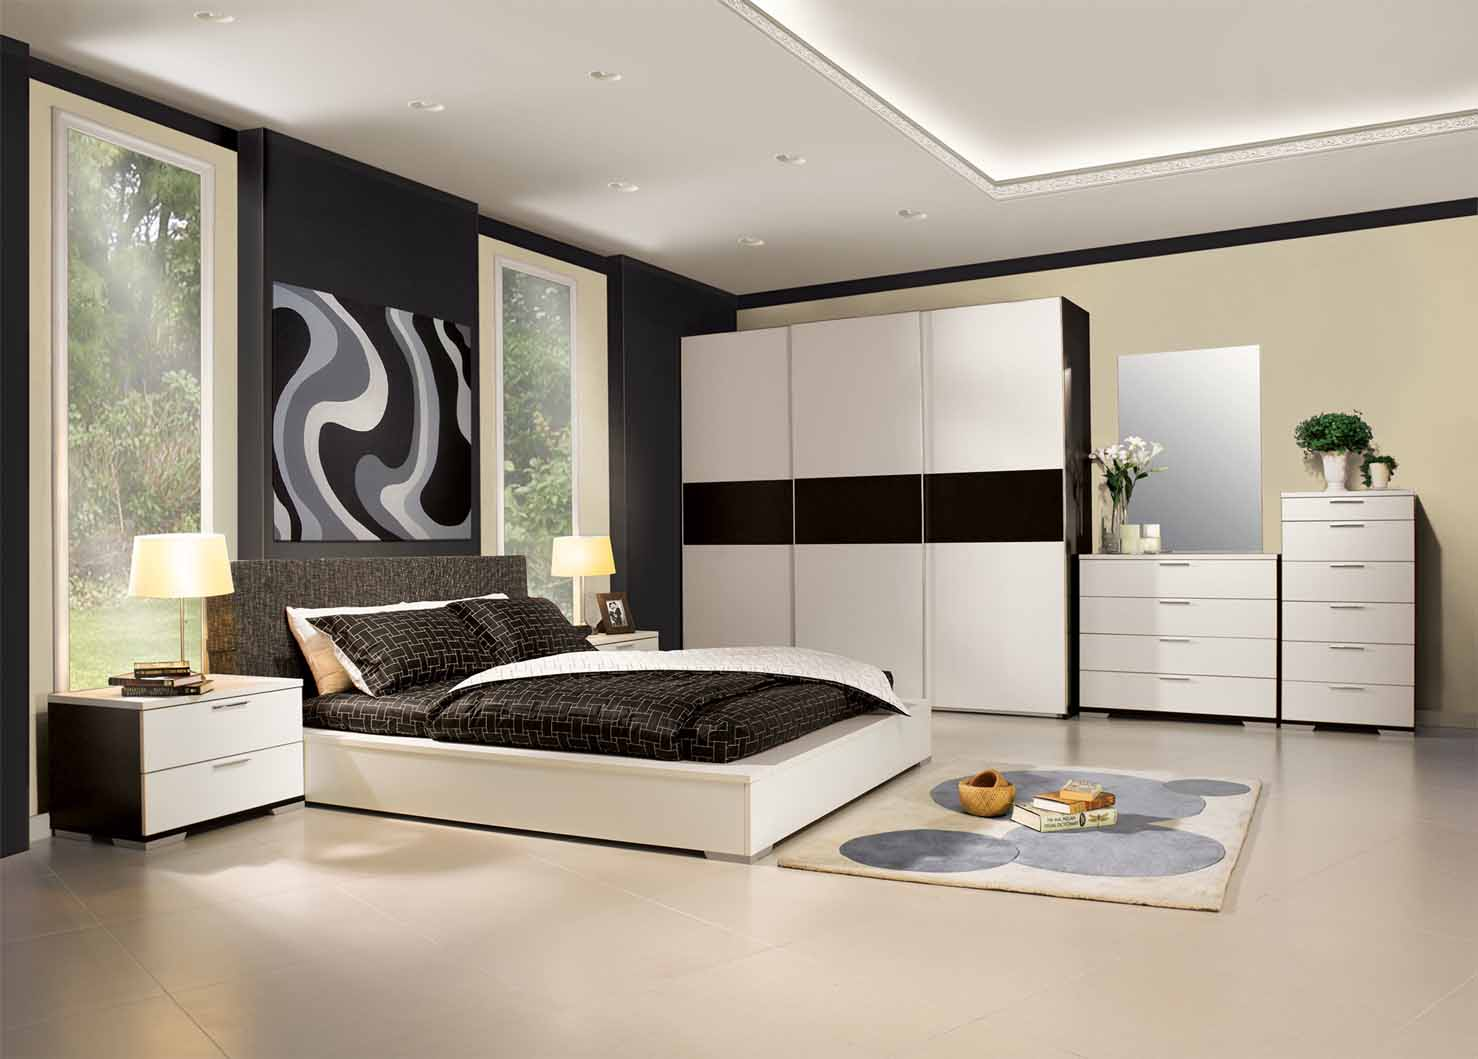 Home interior designs modern bedroom ideas for Bedroom style ideas